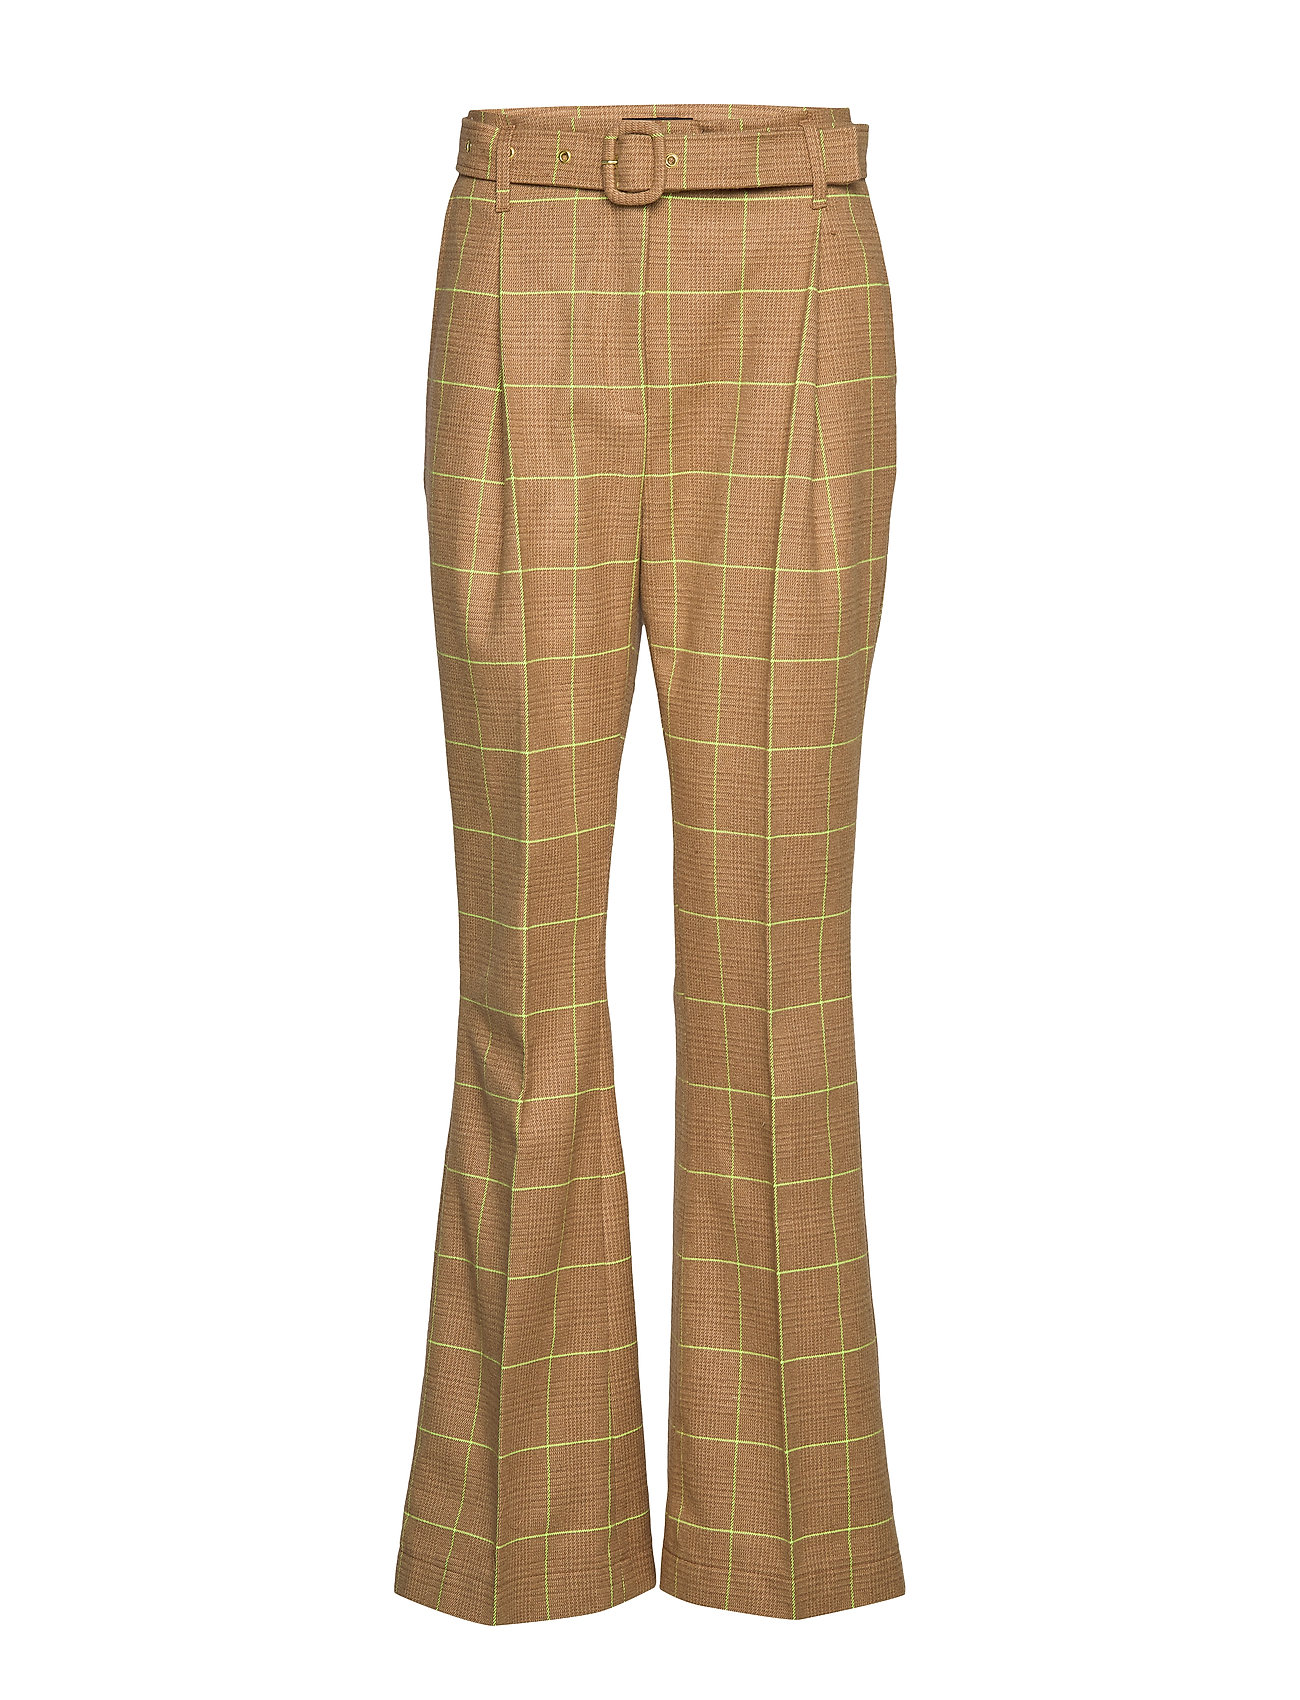 Birgitte Herskind Note Pants - CAMEL CHECKS